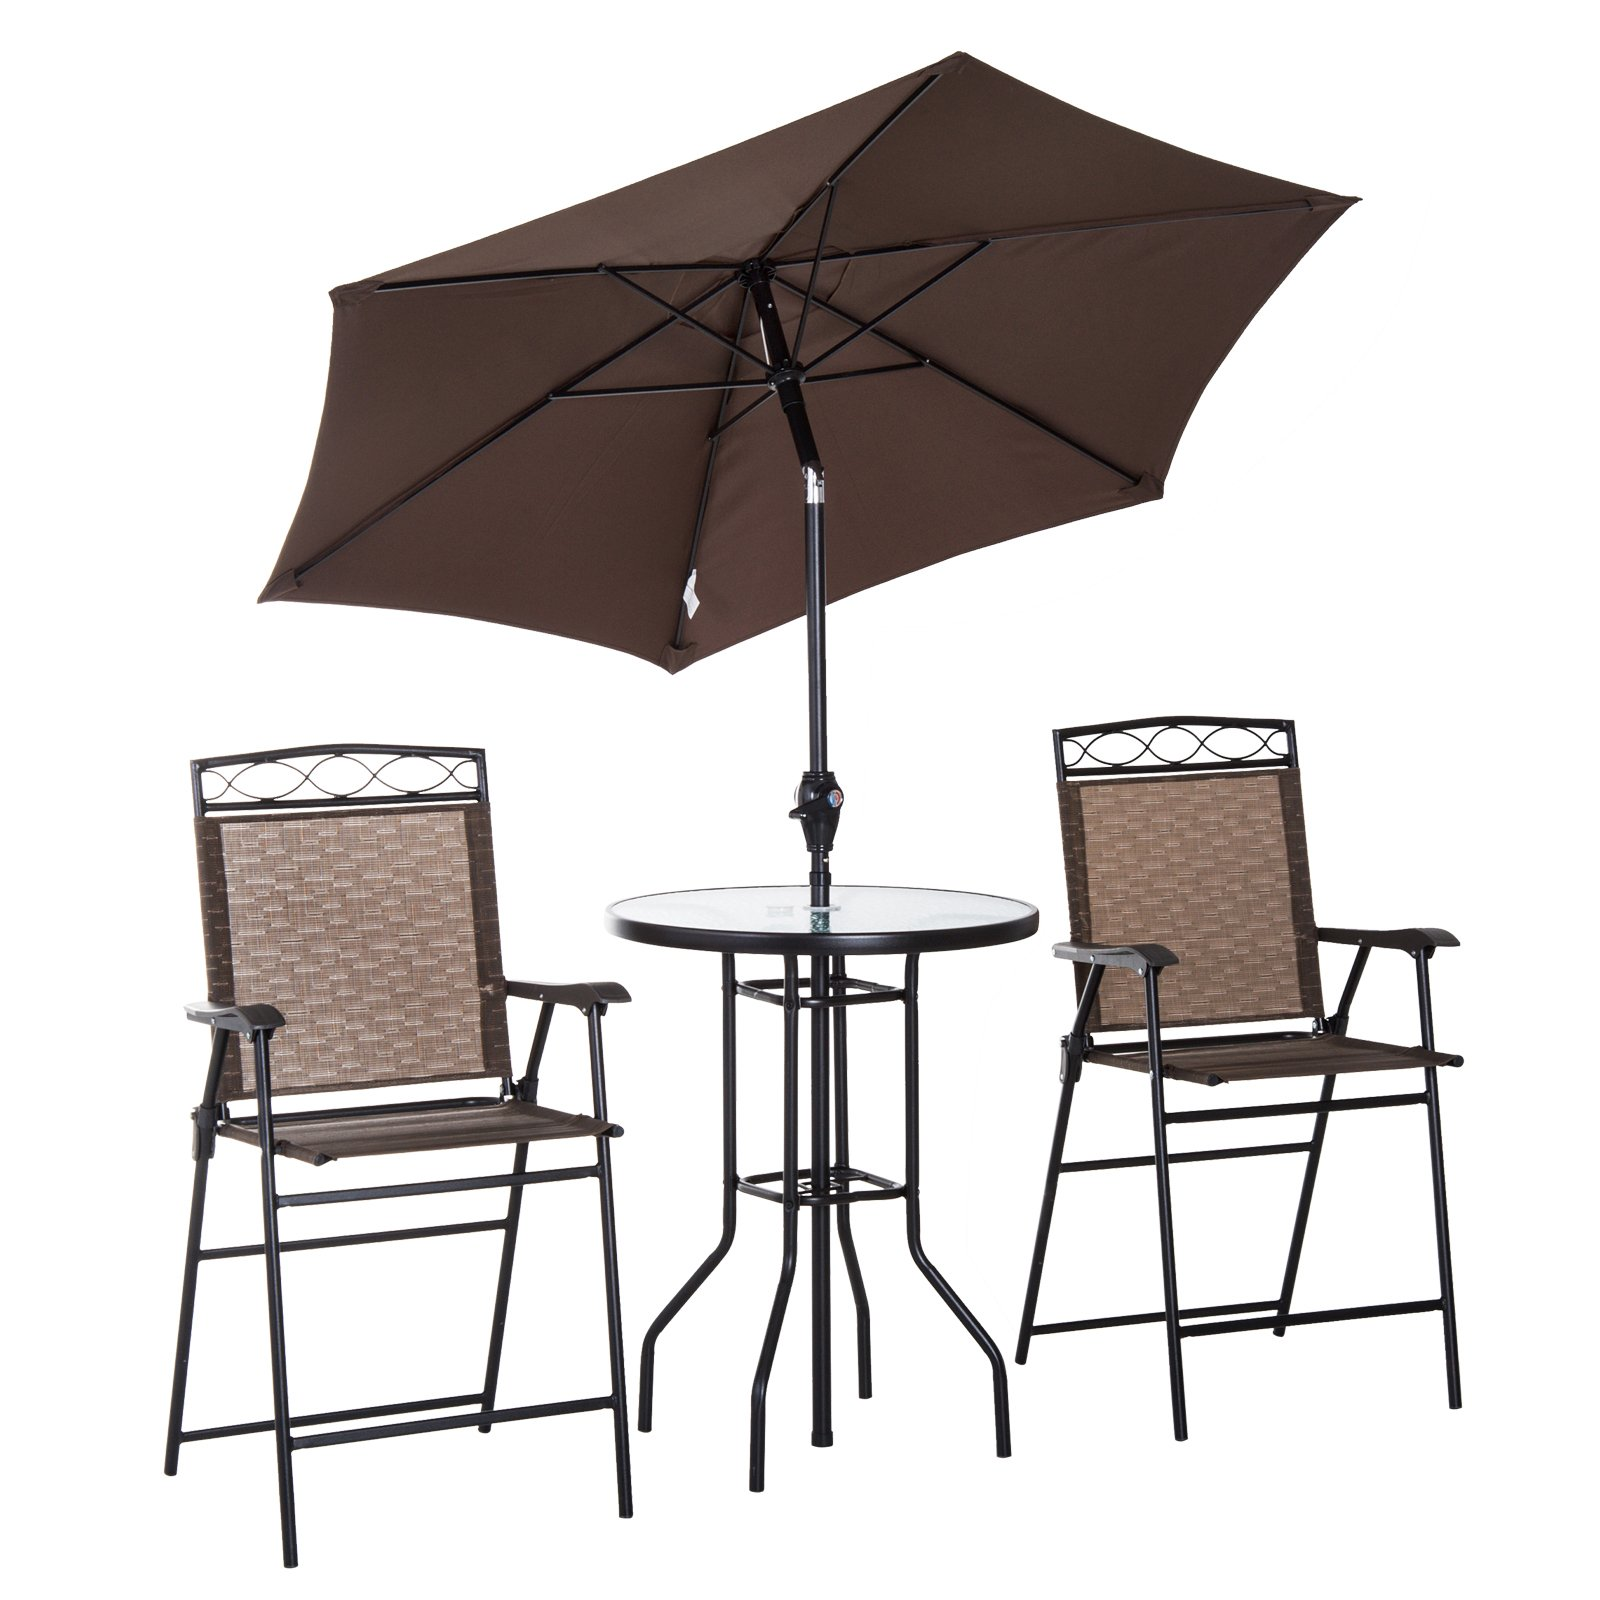 Outsunny 4 Piece Folding Outdoor Patio Pub Dining Table and Chairs Set with 6' Adjustable Tilt Umbrella